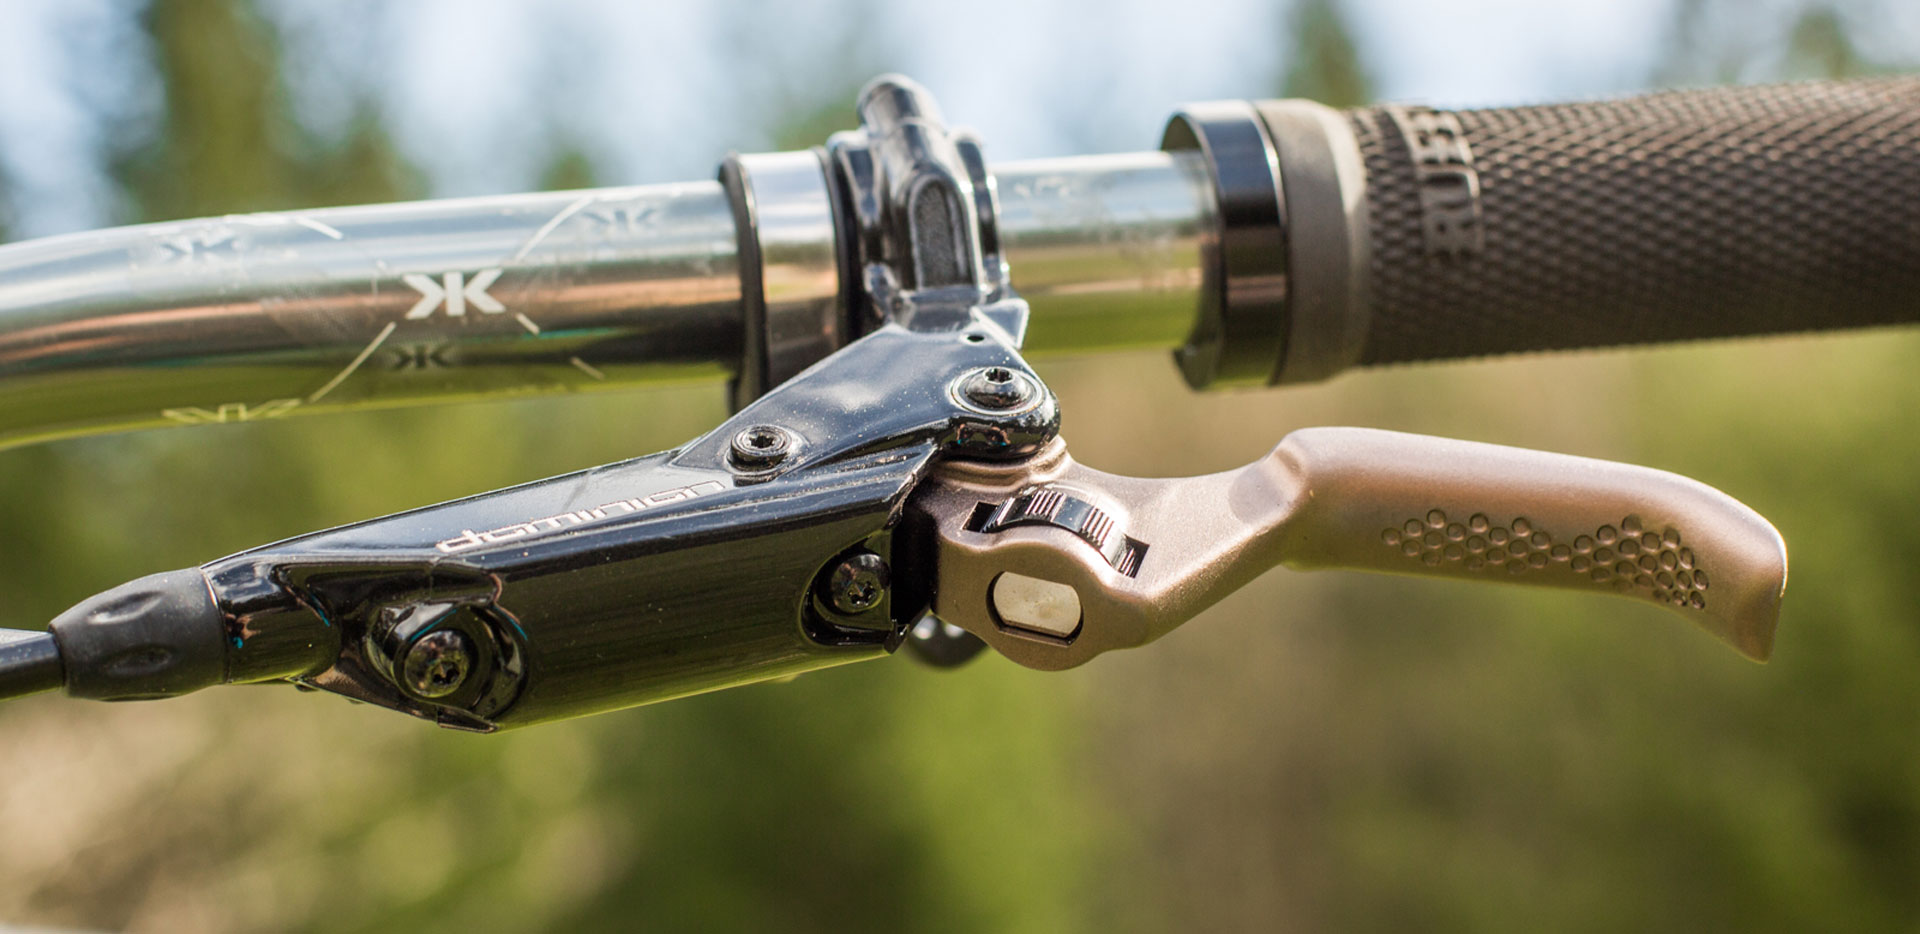 Hayes Dominion A4 Brakeset Review